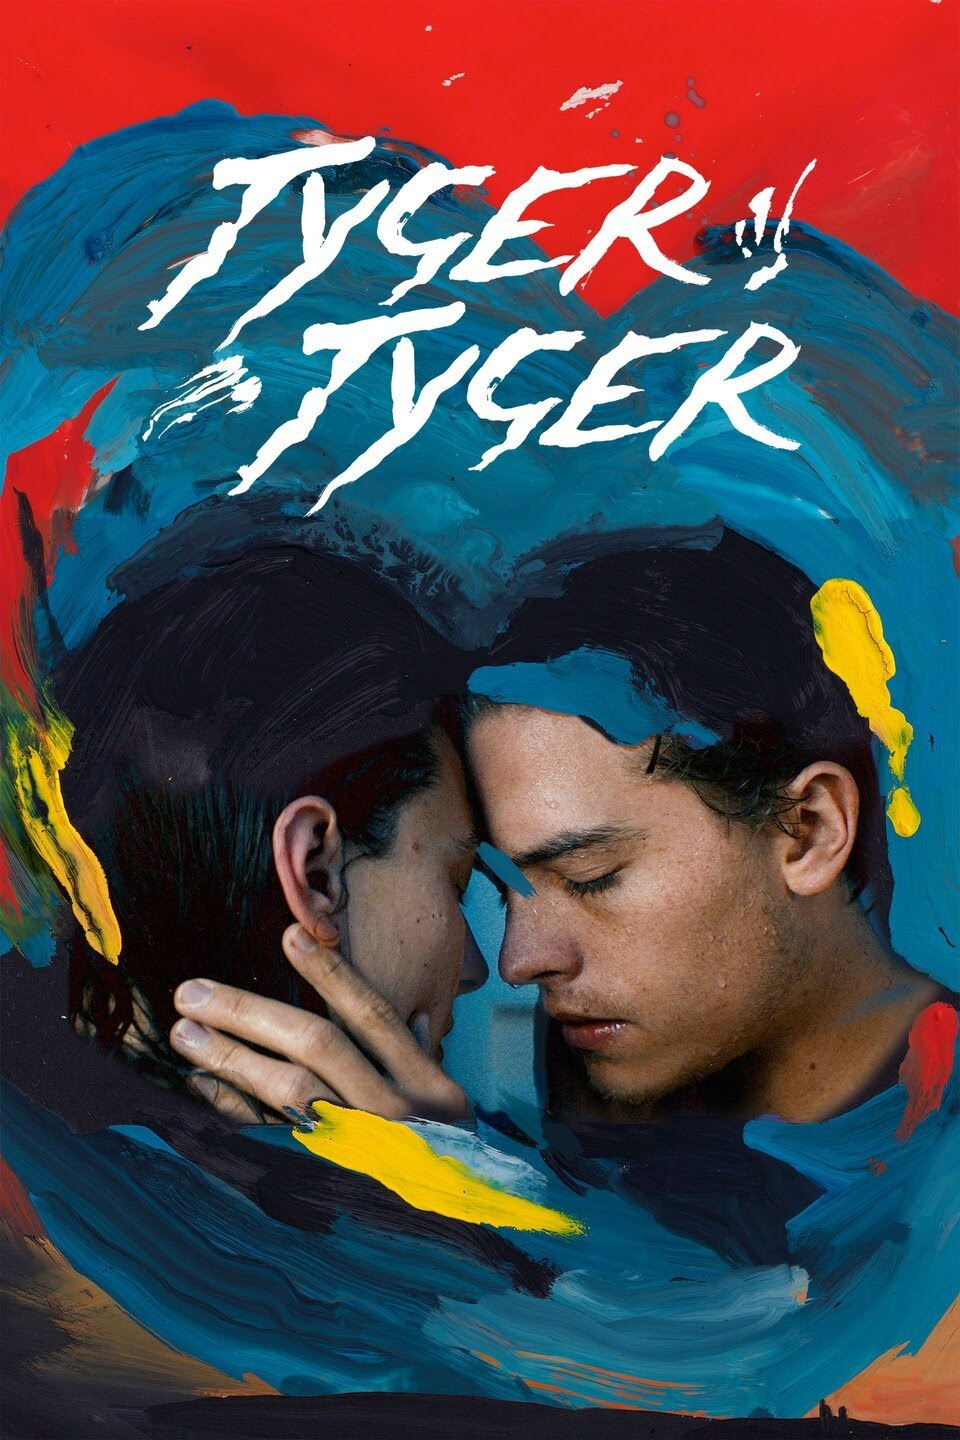 Tyger Tyger 2021 English 720p HDRip 850MB Download